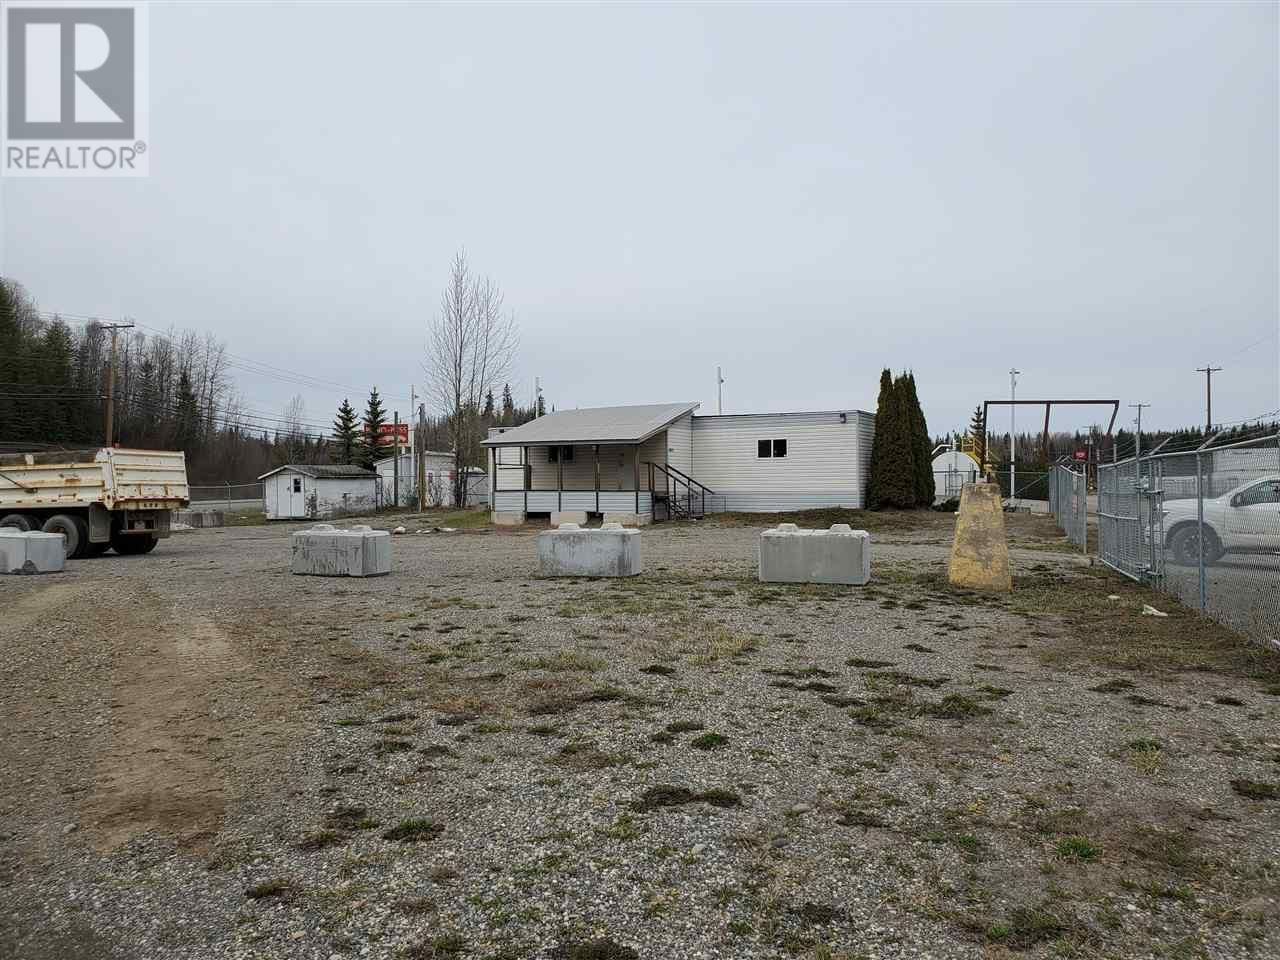 Main Photo: 5399-5411 HARTWAY DRIVE in PG City North (Zone 73): Vacant Land for sale : MLS®# C8037479